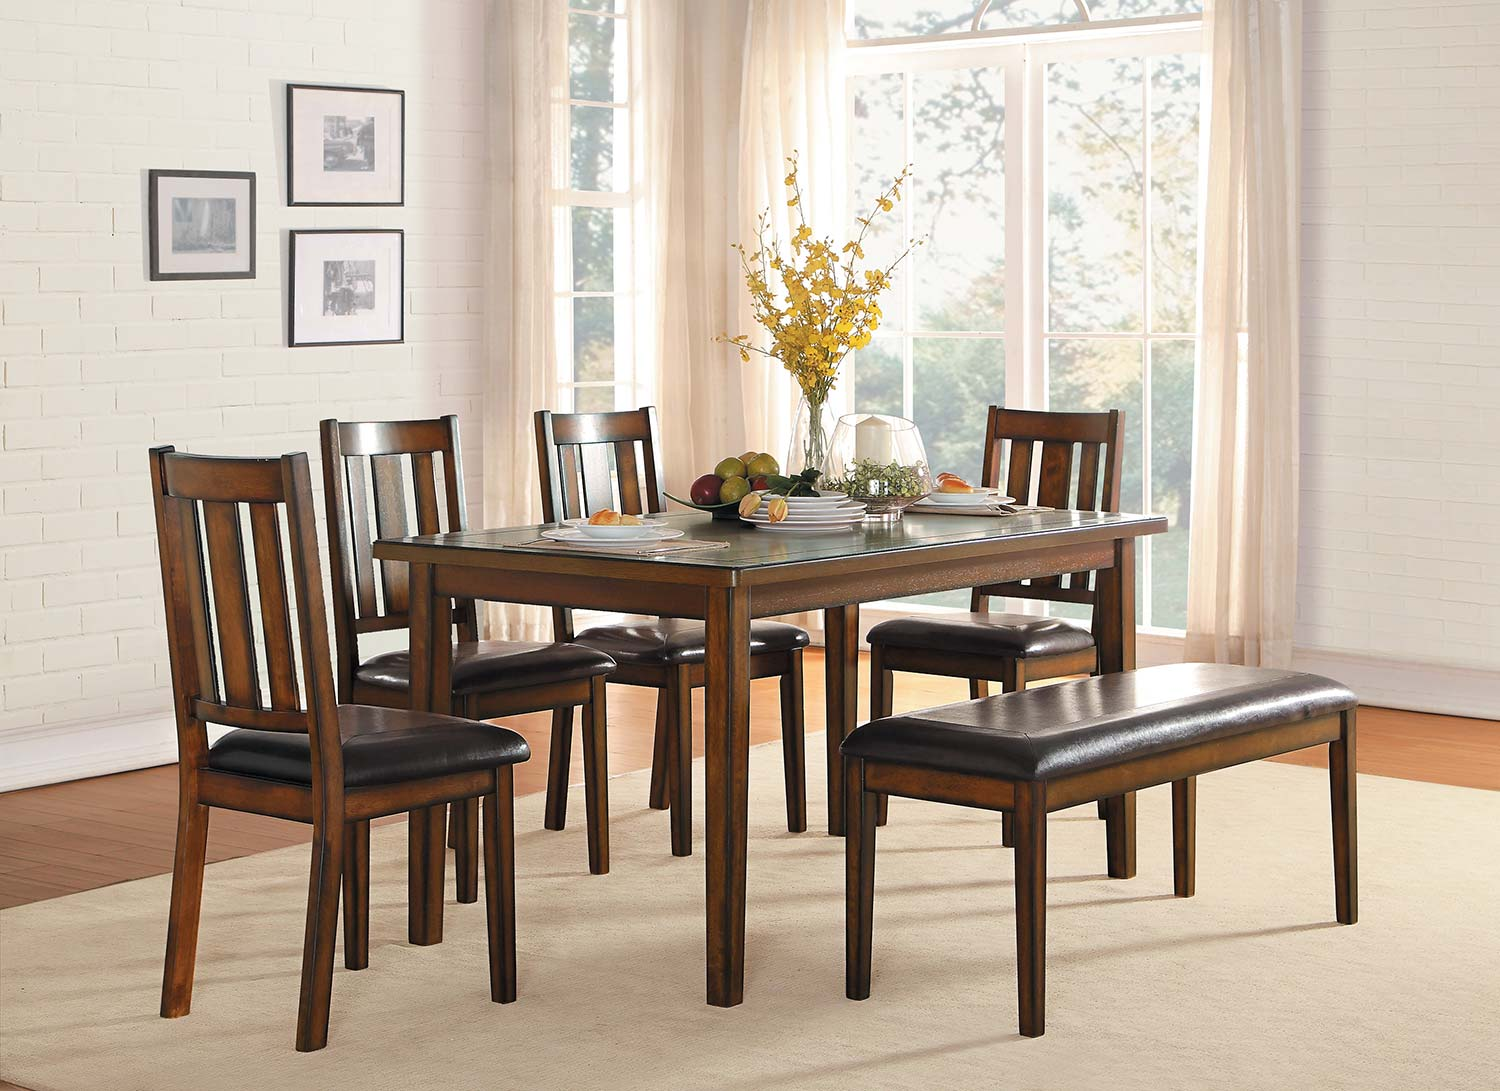 Homelegance Delmar 6- Piece Pack Dinette Set - Burnish Finish